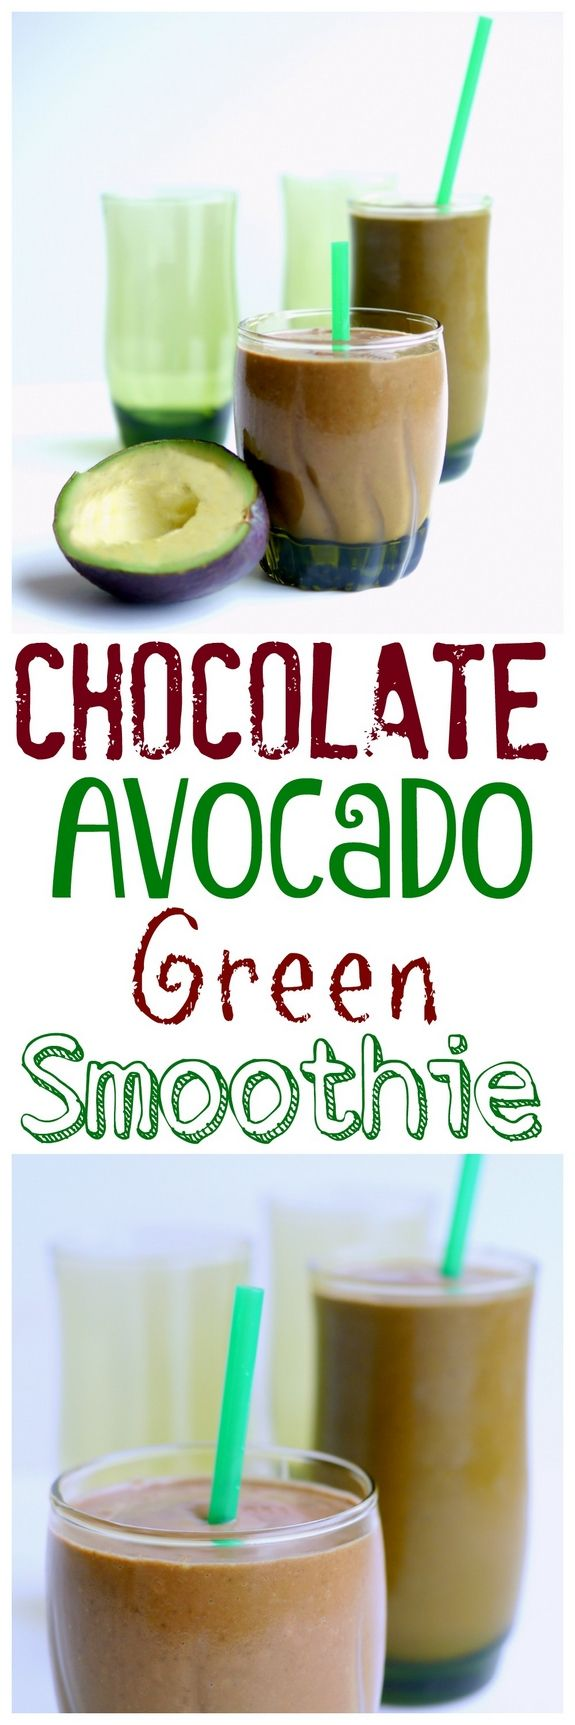 (Swap raw cacao nibs for chocolate chips; use unsweetened almond milk) This deep-dark chocolatey shake is a delicious way to get your morning healthy fat + veggies. Serves 2.